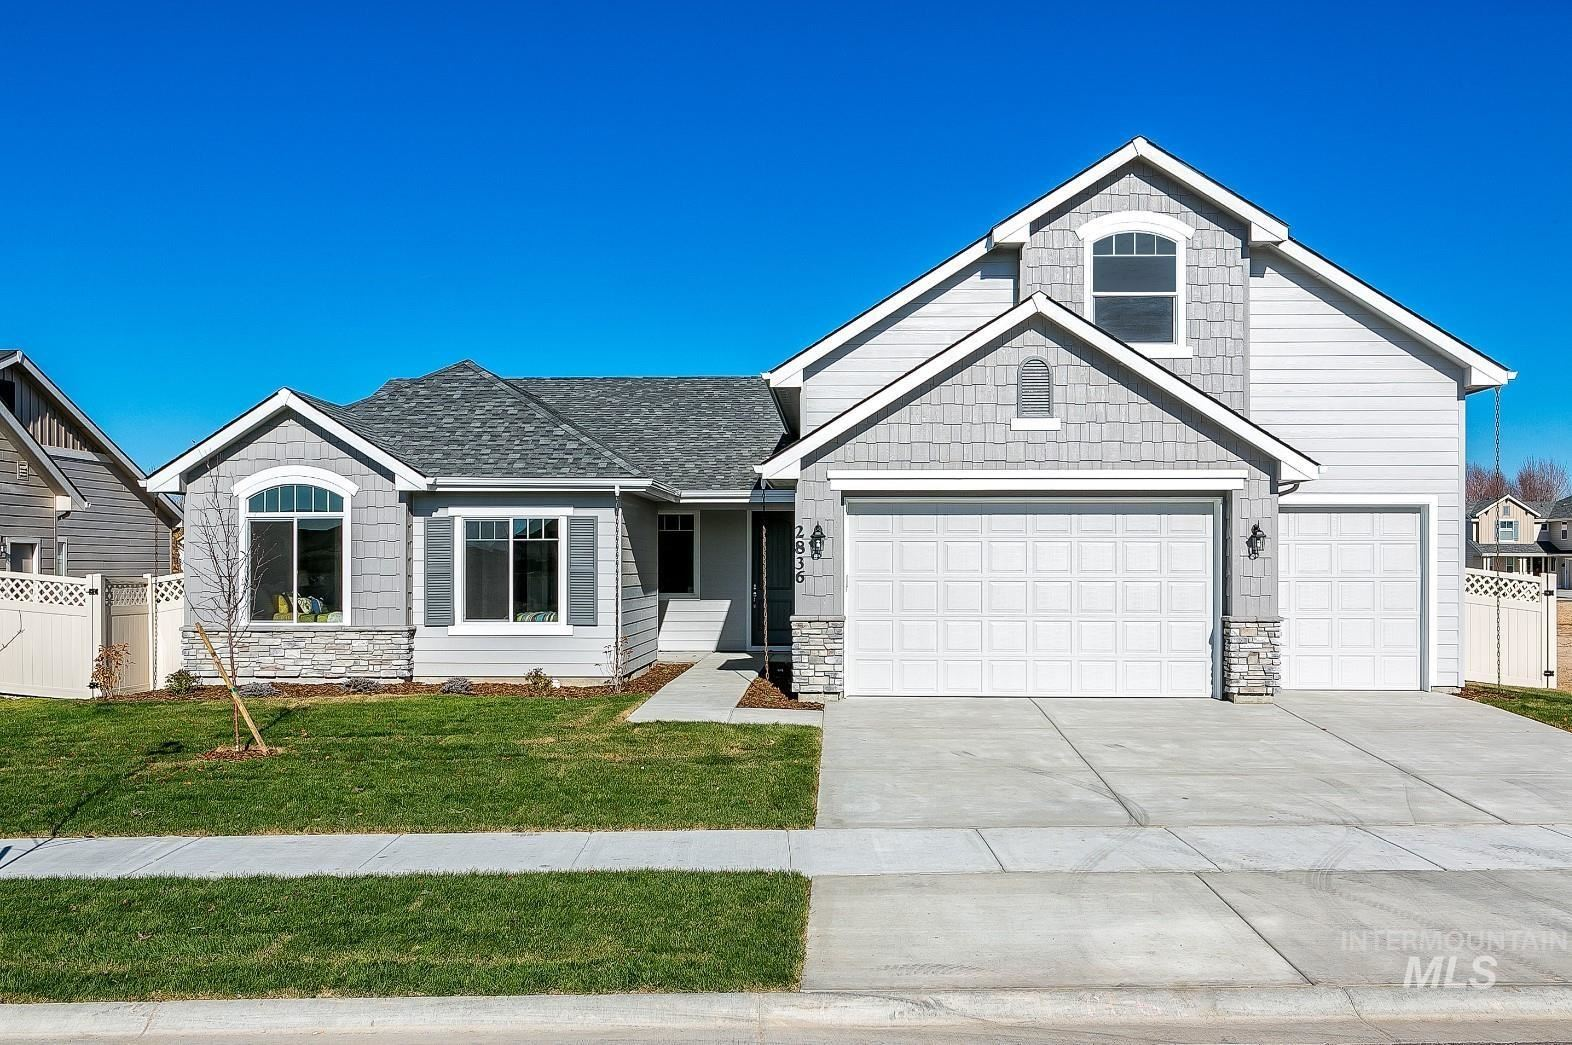 17419 N Fort Hall Ave, Nampa, ID 83687 - MLS#: 98809134